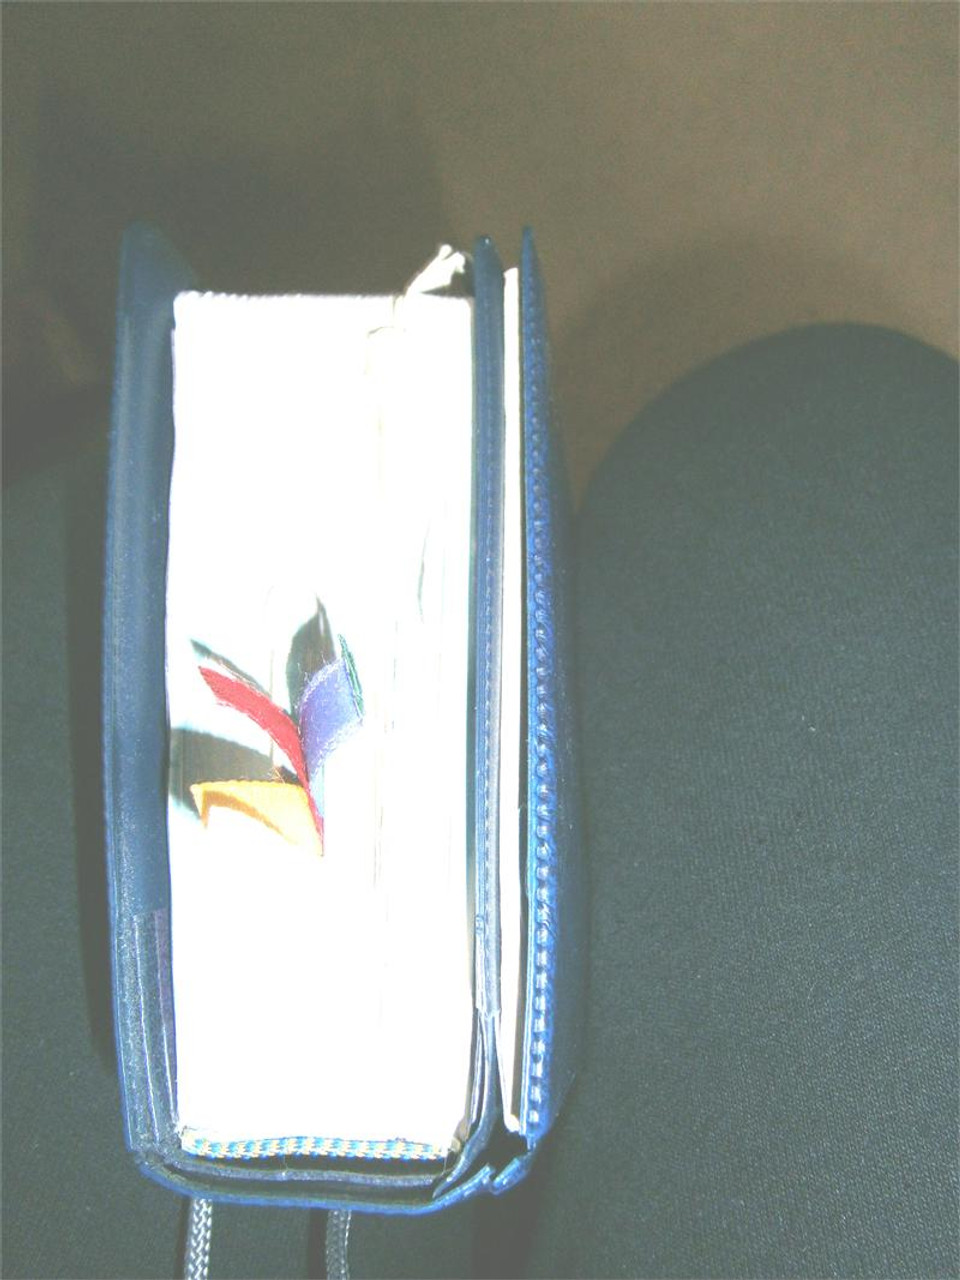 Breviary covers for smaller book or supplemental prayer book, Franciscan supplement